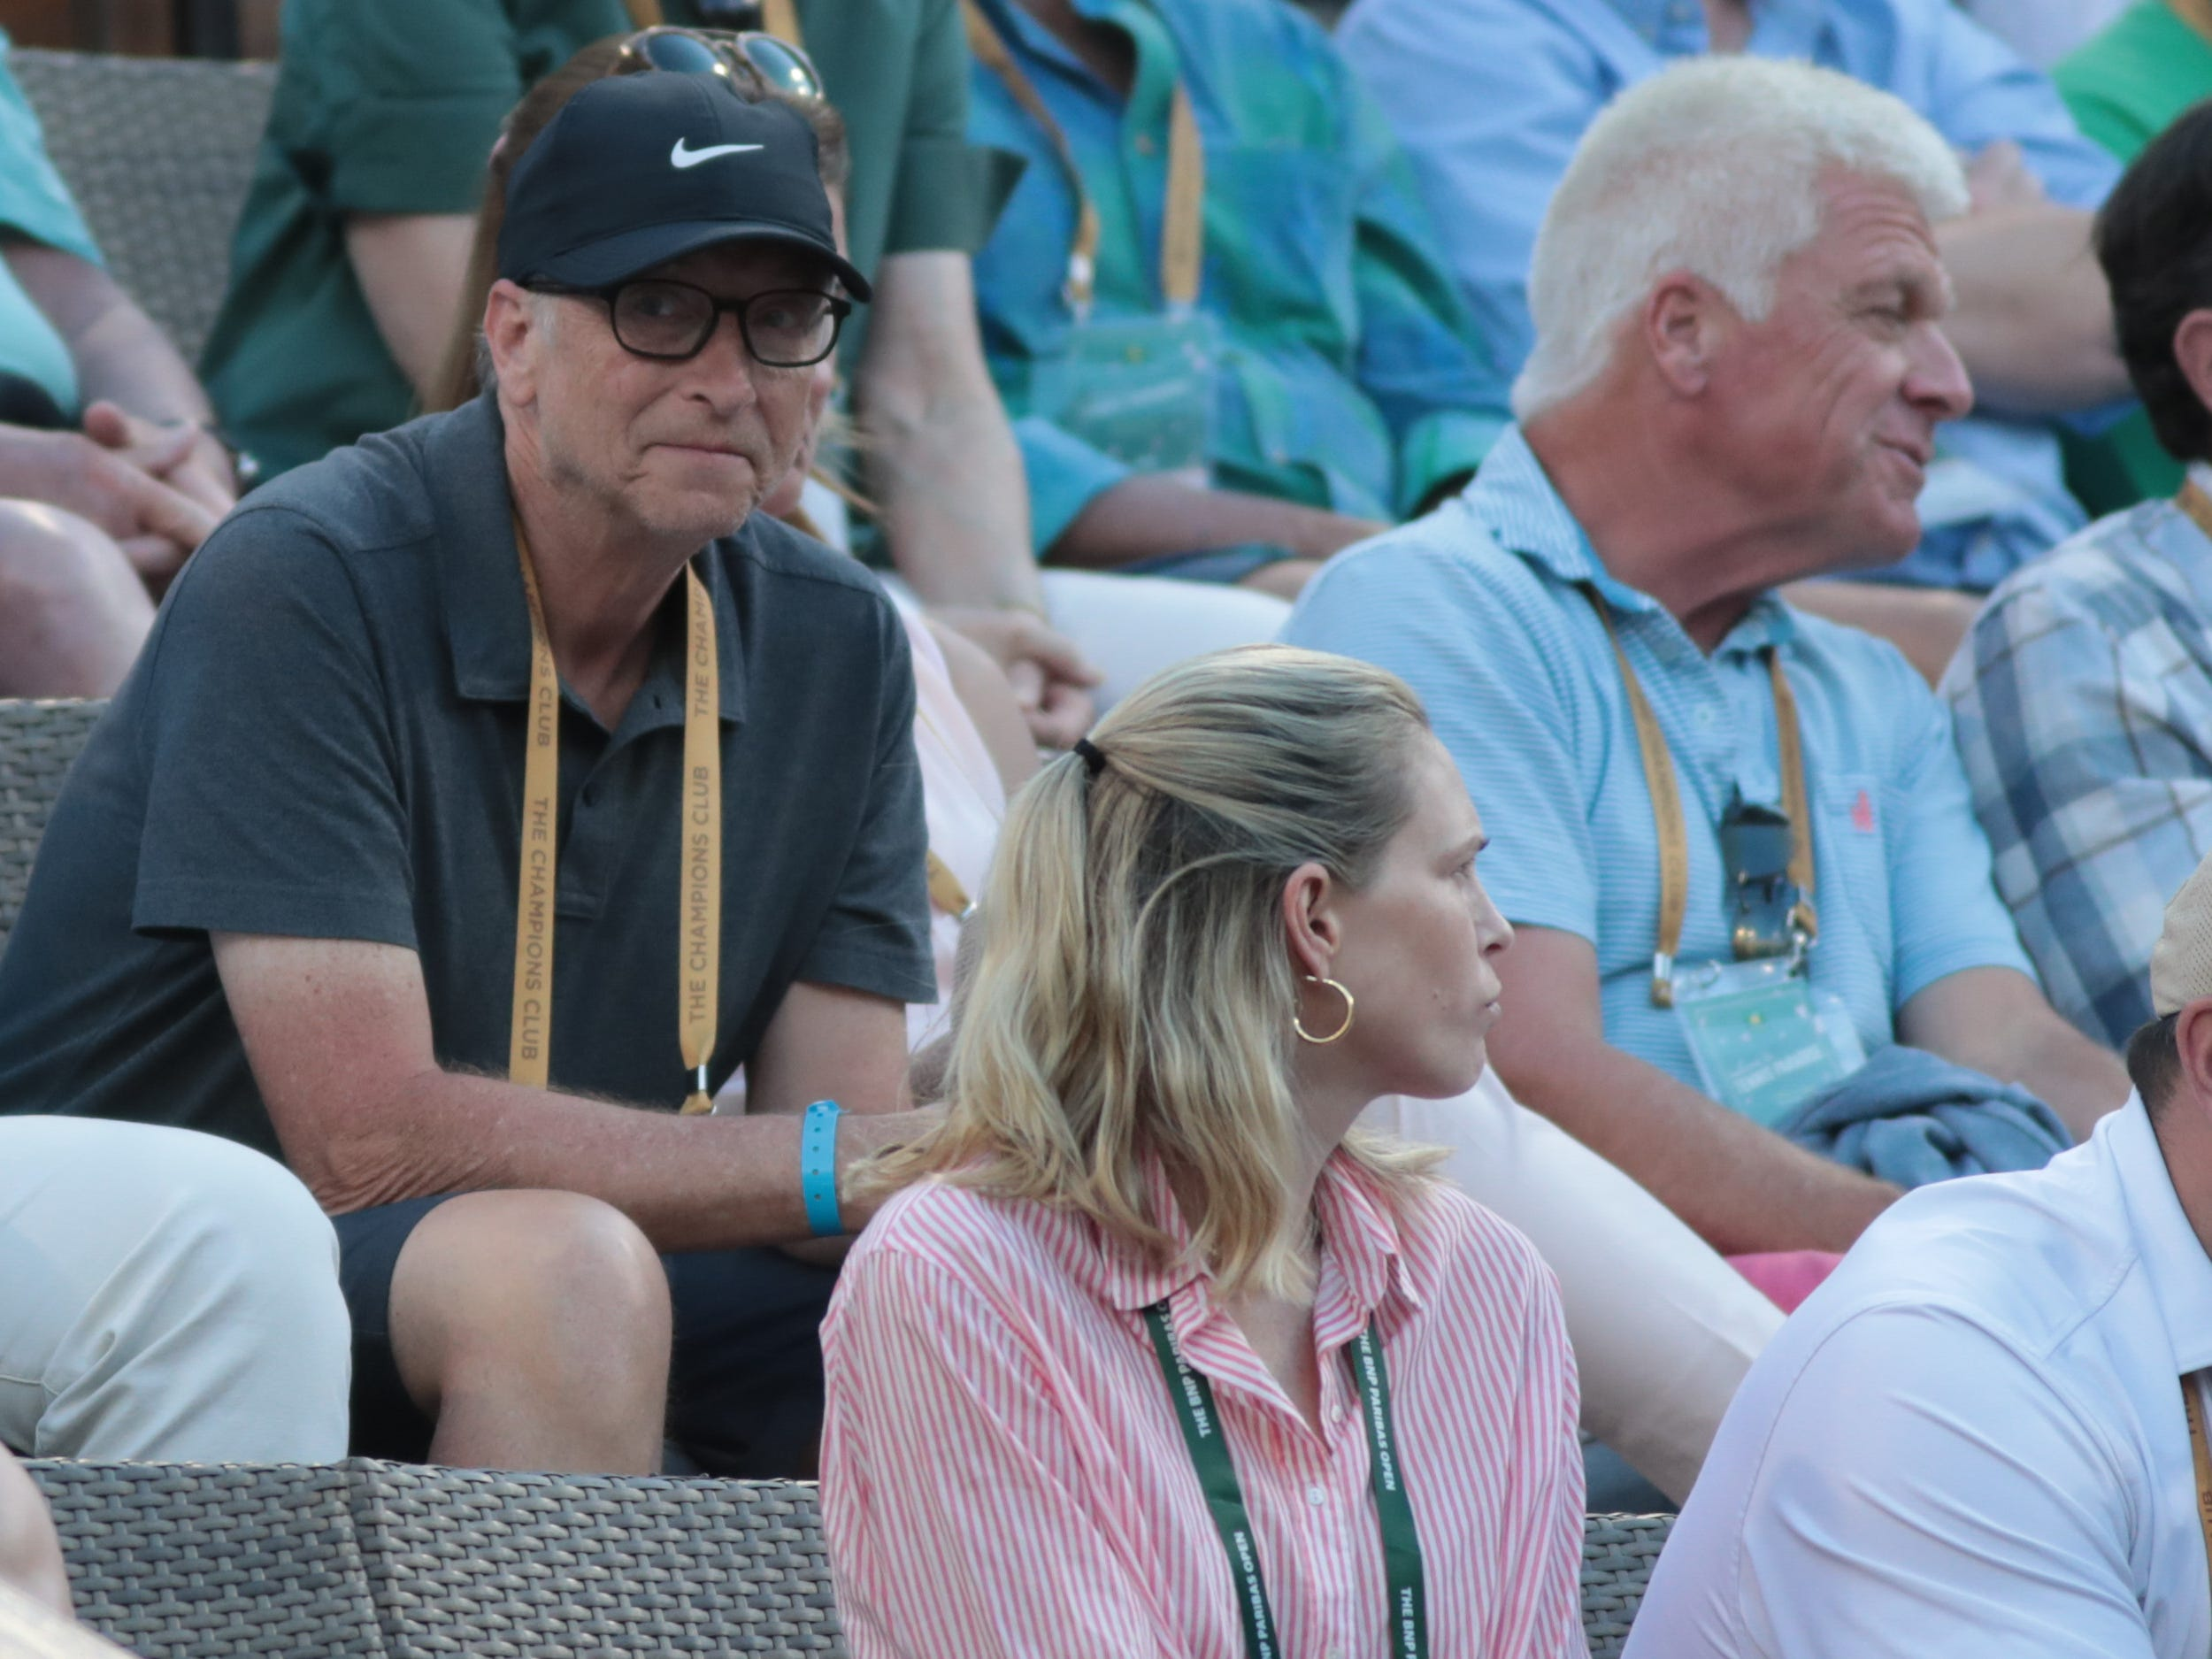 Bill Gates looks towards Roger Federer's team during the final set of the finals of the BNP Paribas Open in Indian Wells, Calif., March 17, 2019.